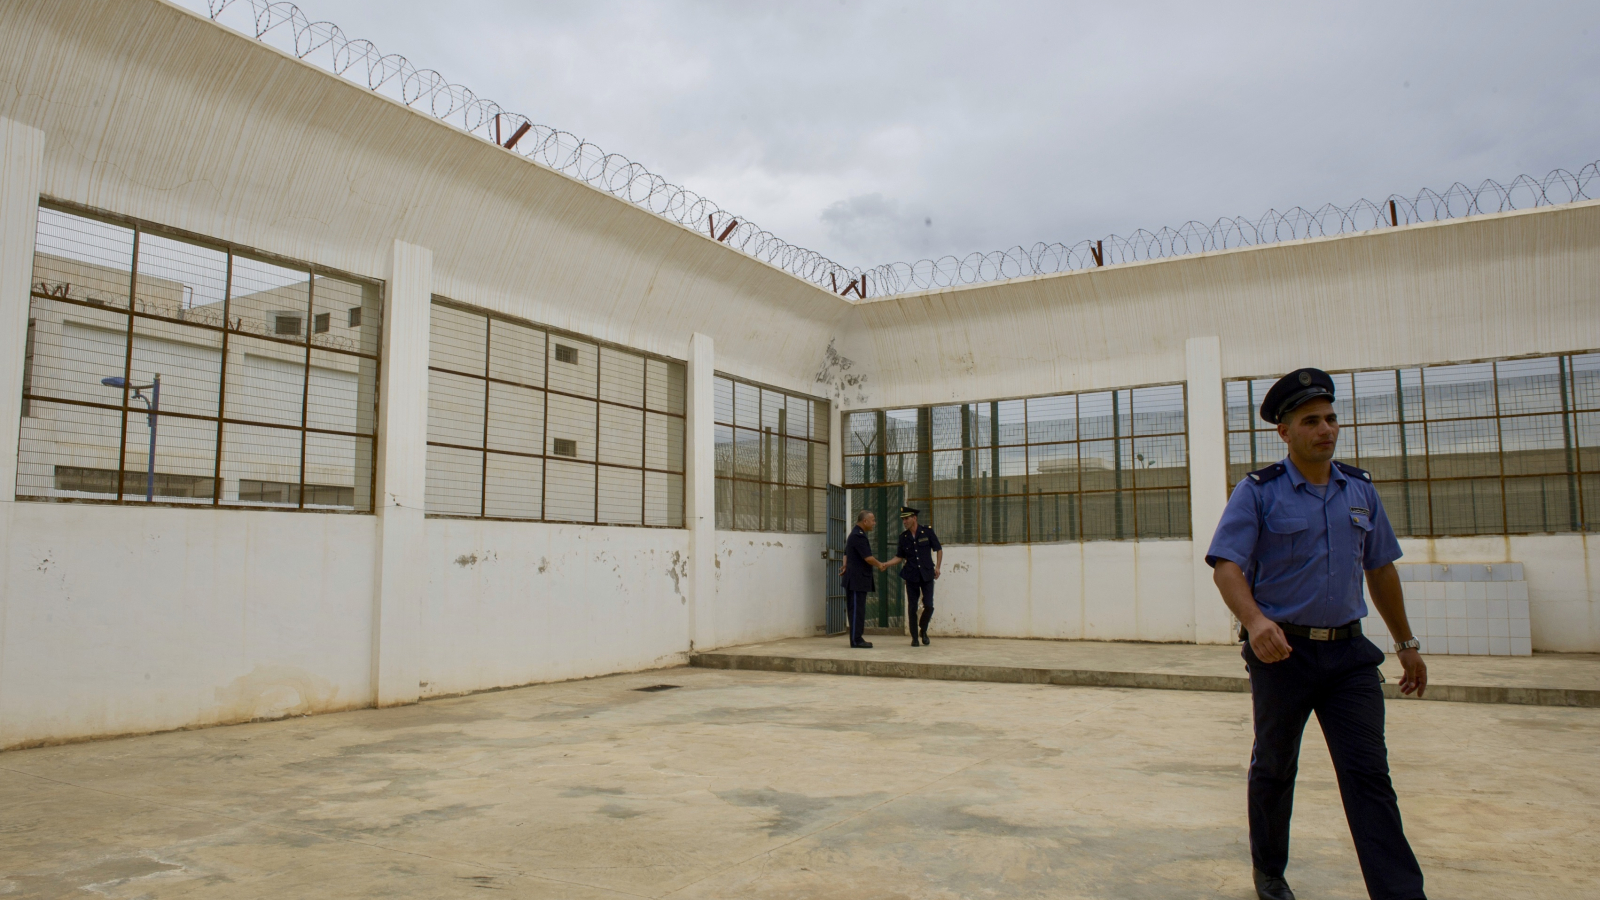 Kolea Prison, one of Algeria's most modern prisons